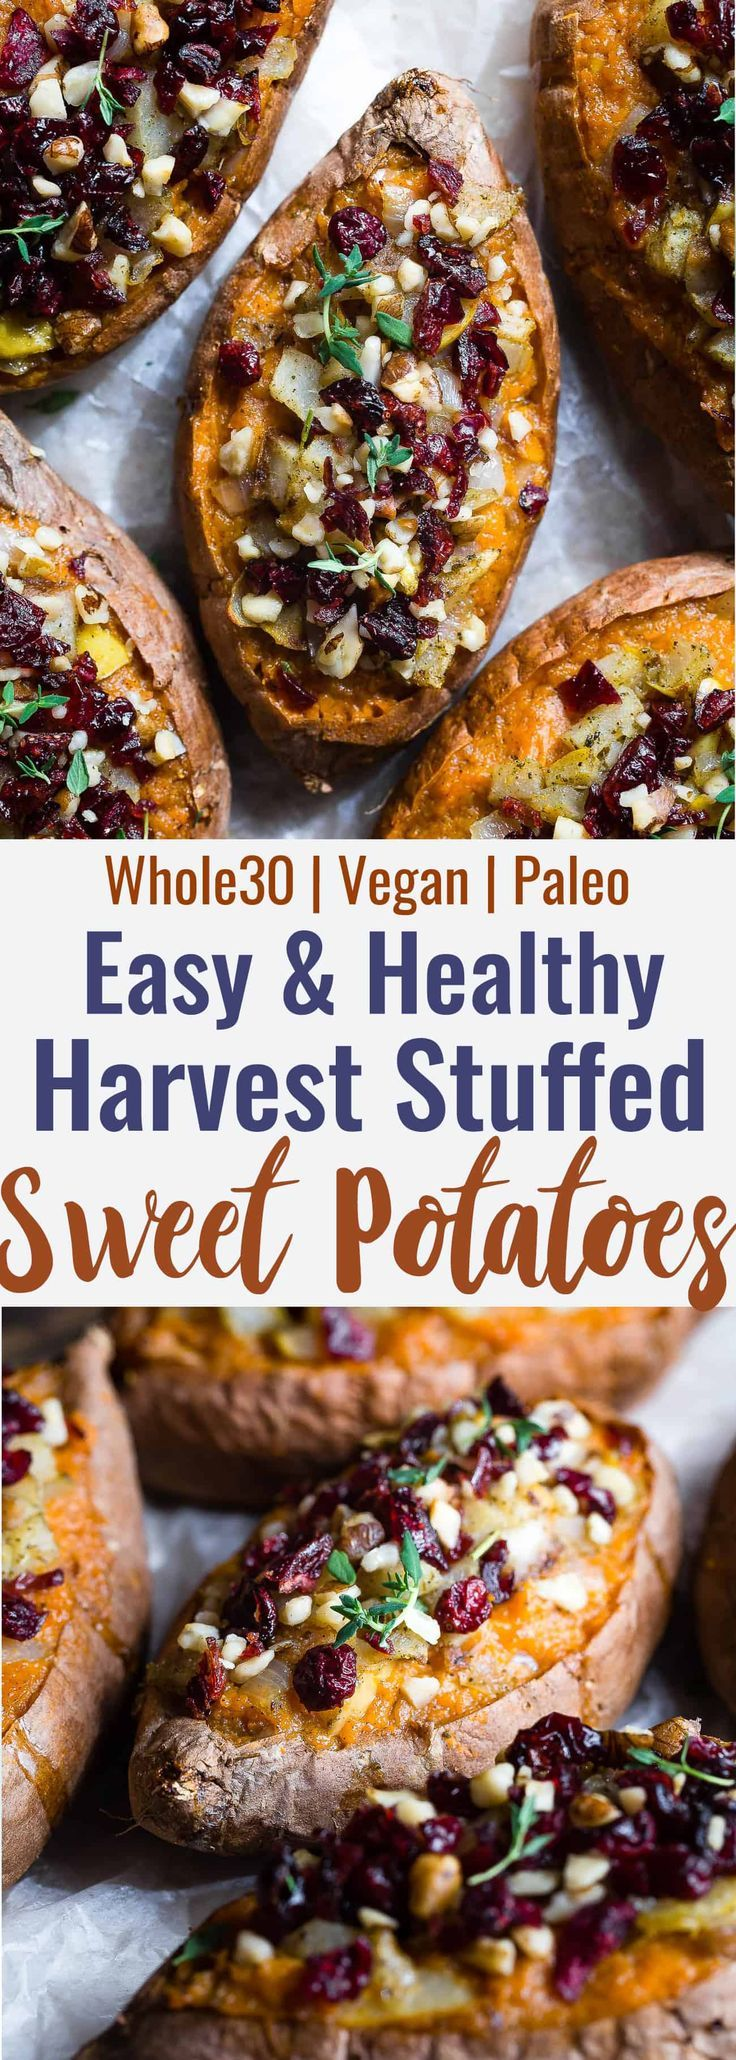 Harvest Paleo Vegan Stuffed Sweet Potatoes | Food Faith Fitness